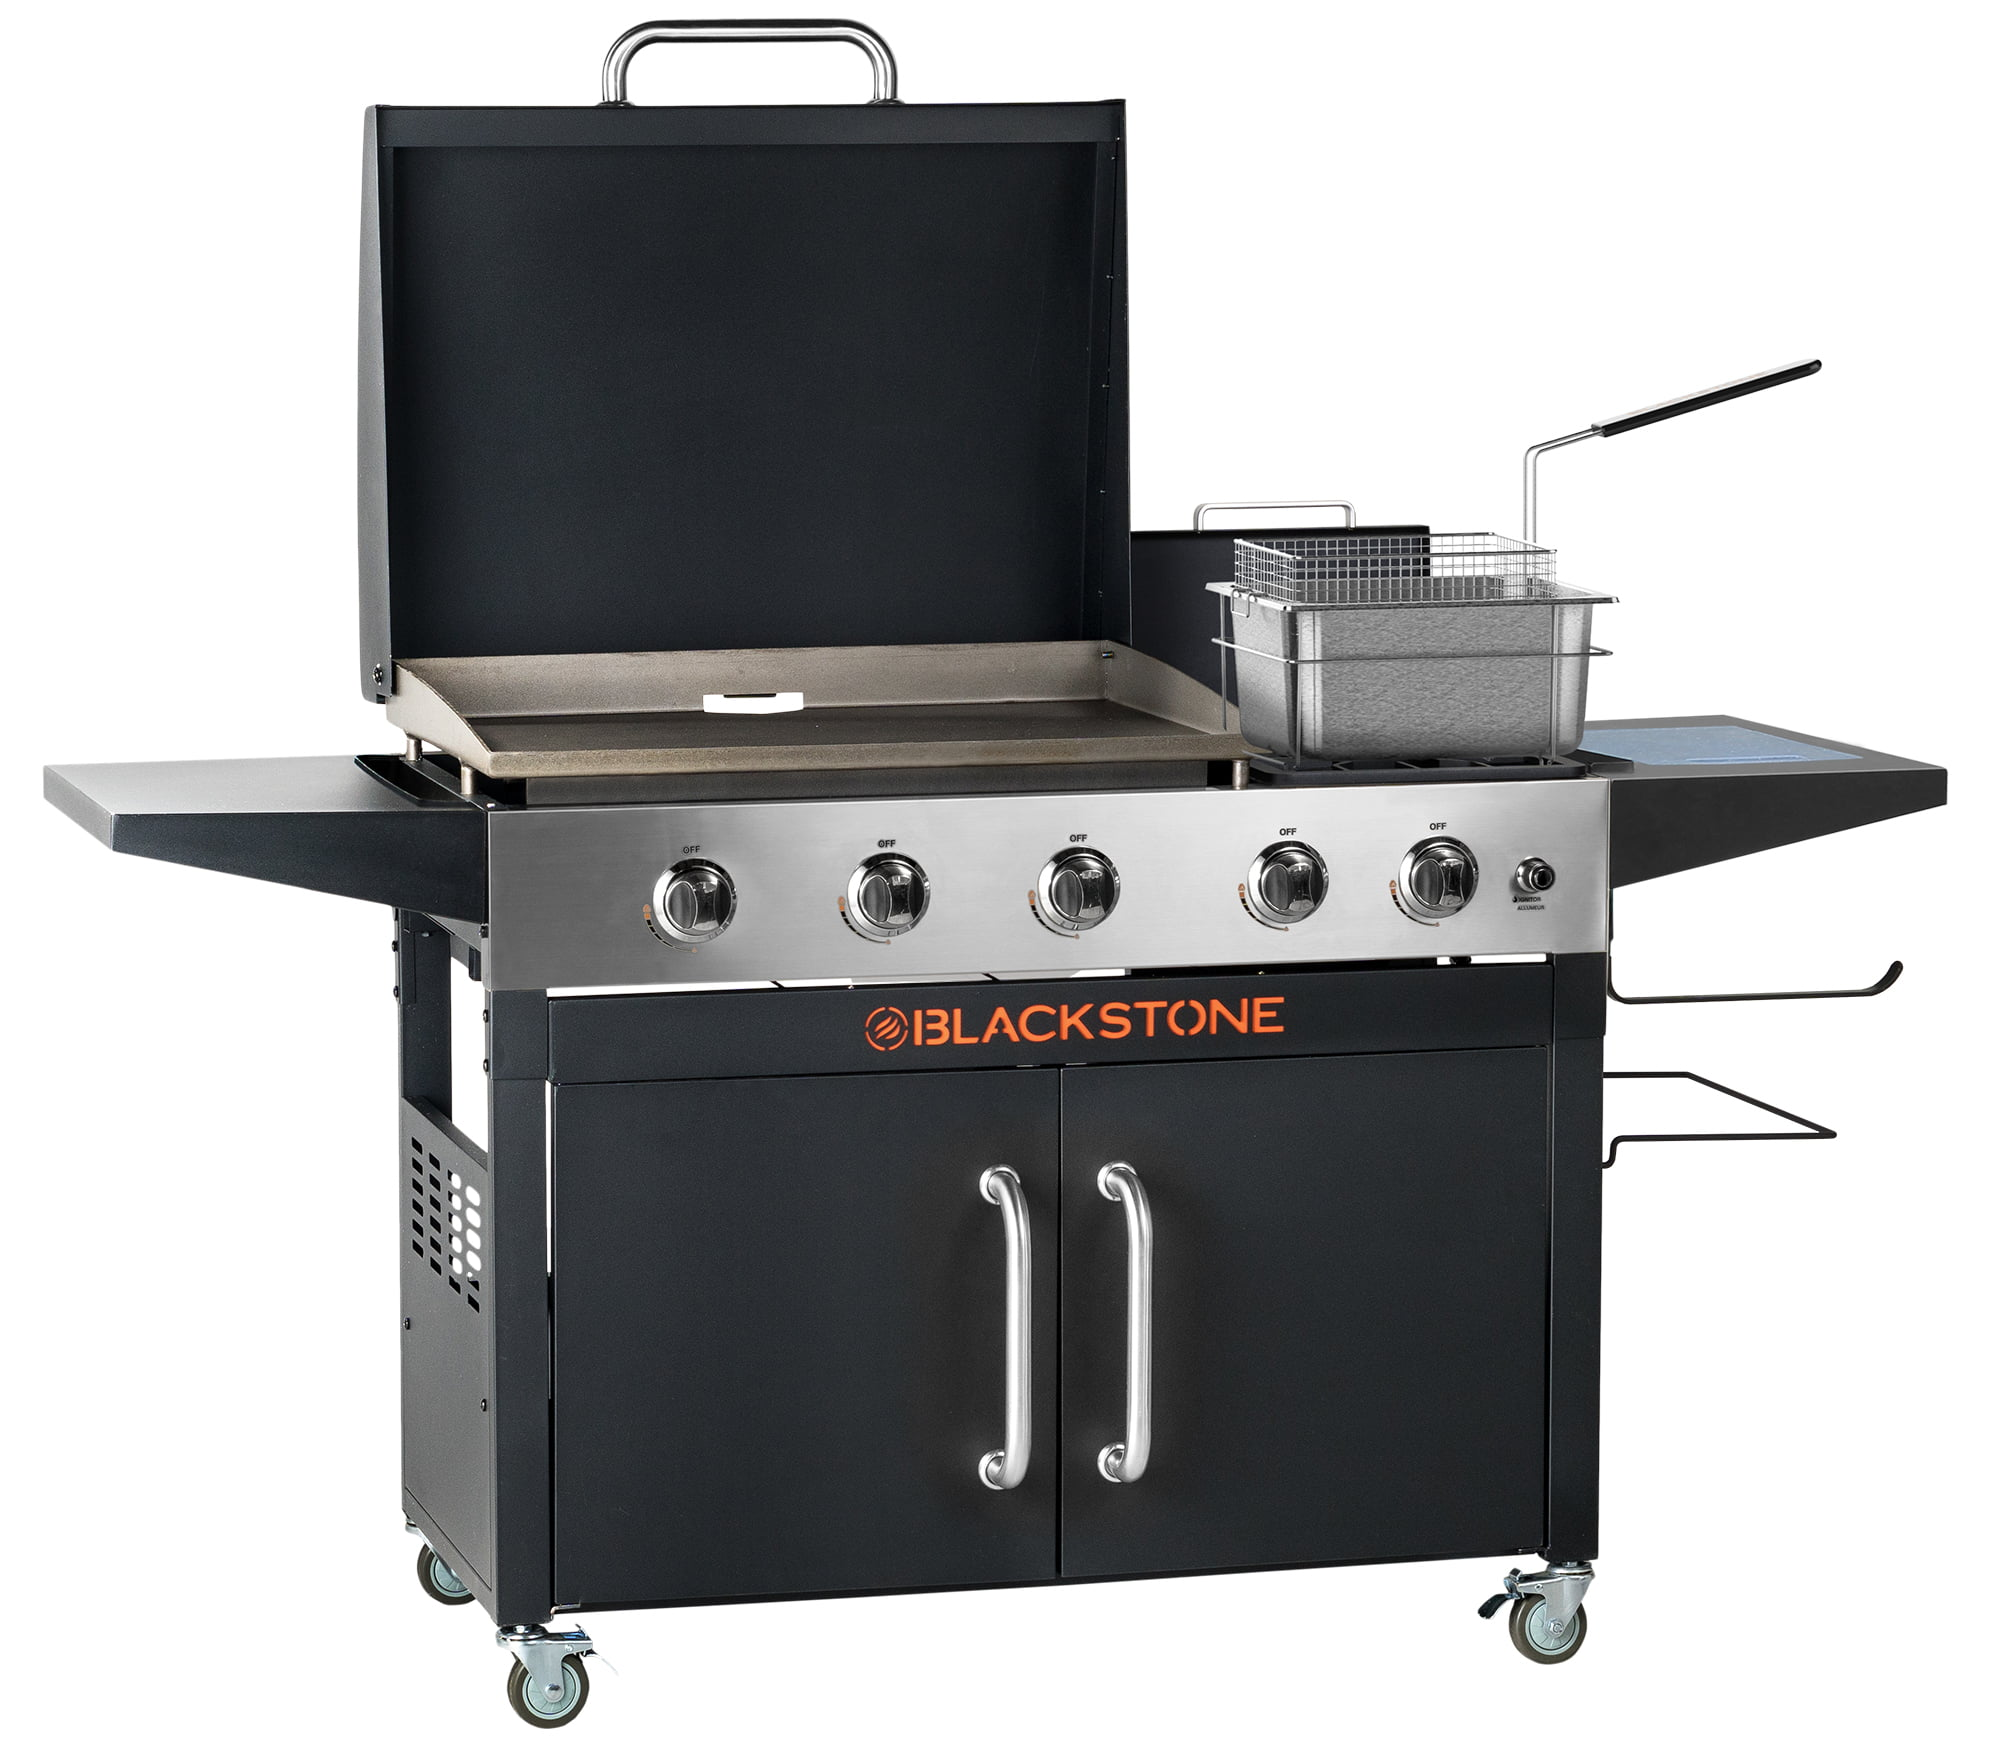 "Blackstone Range Top Combo - 28"" Griddle with Bonus Fryer"